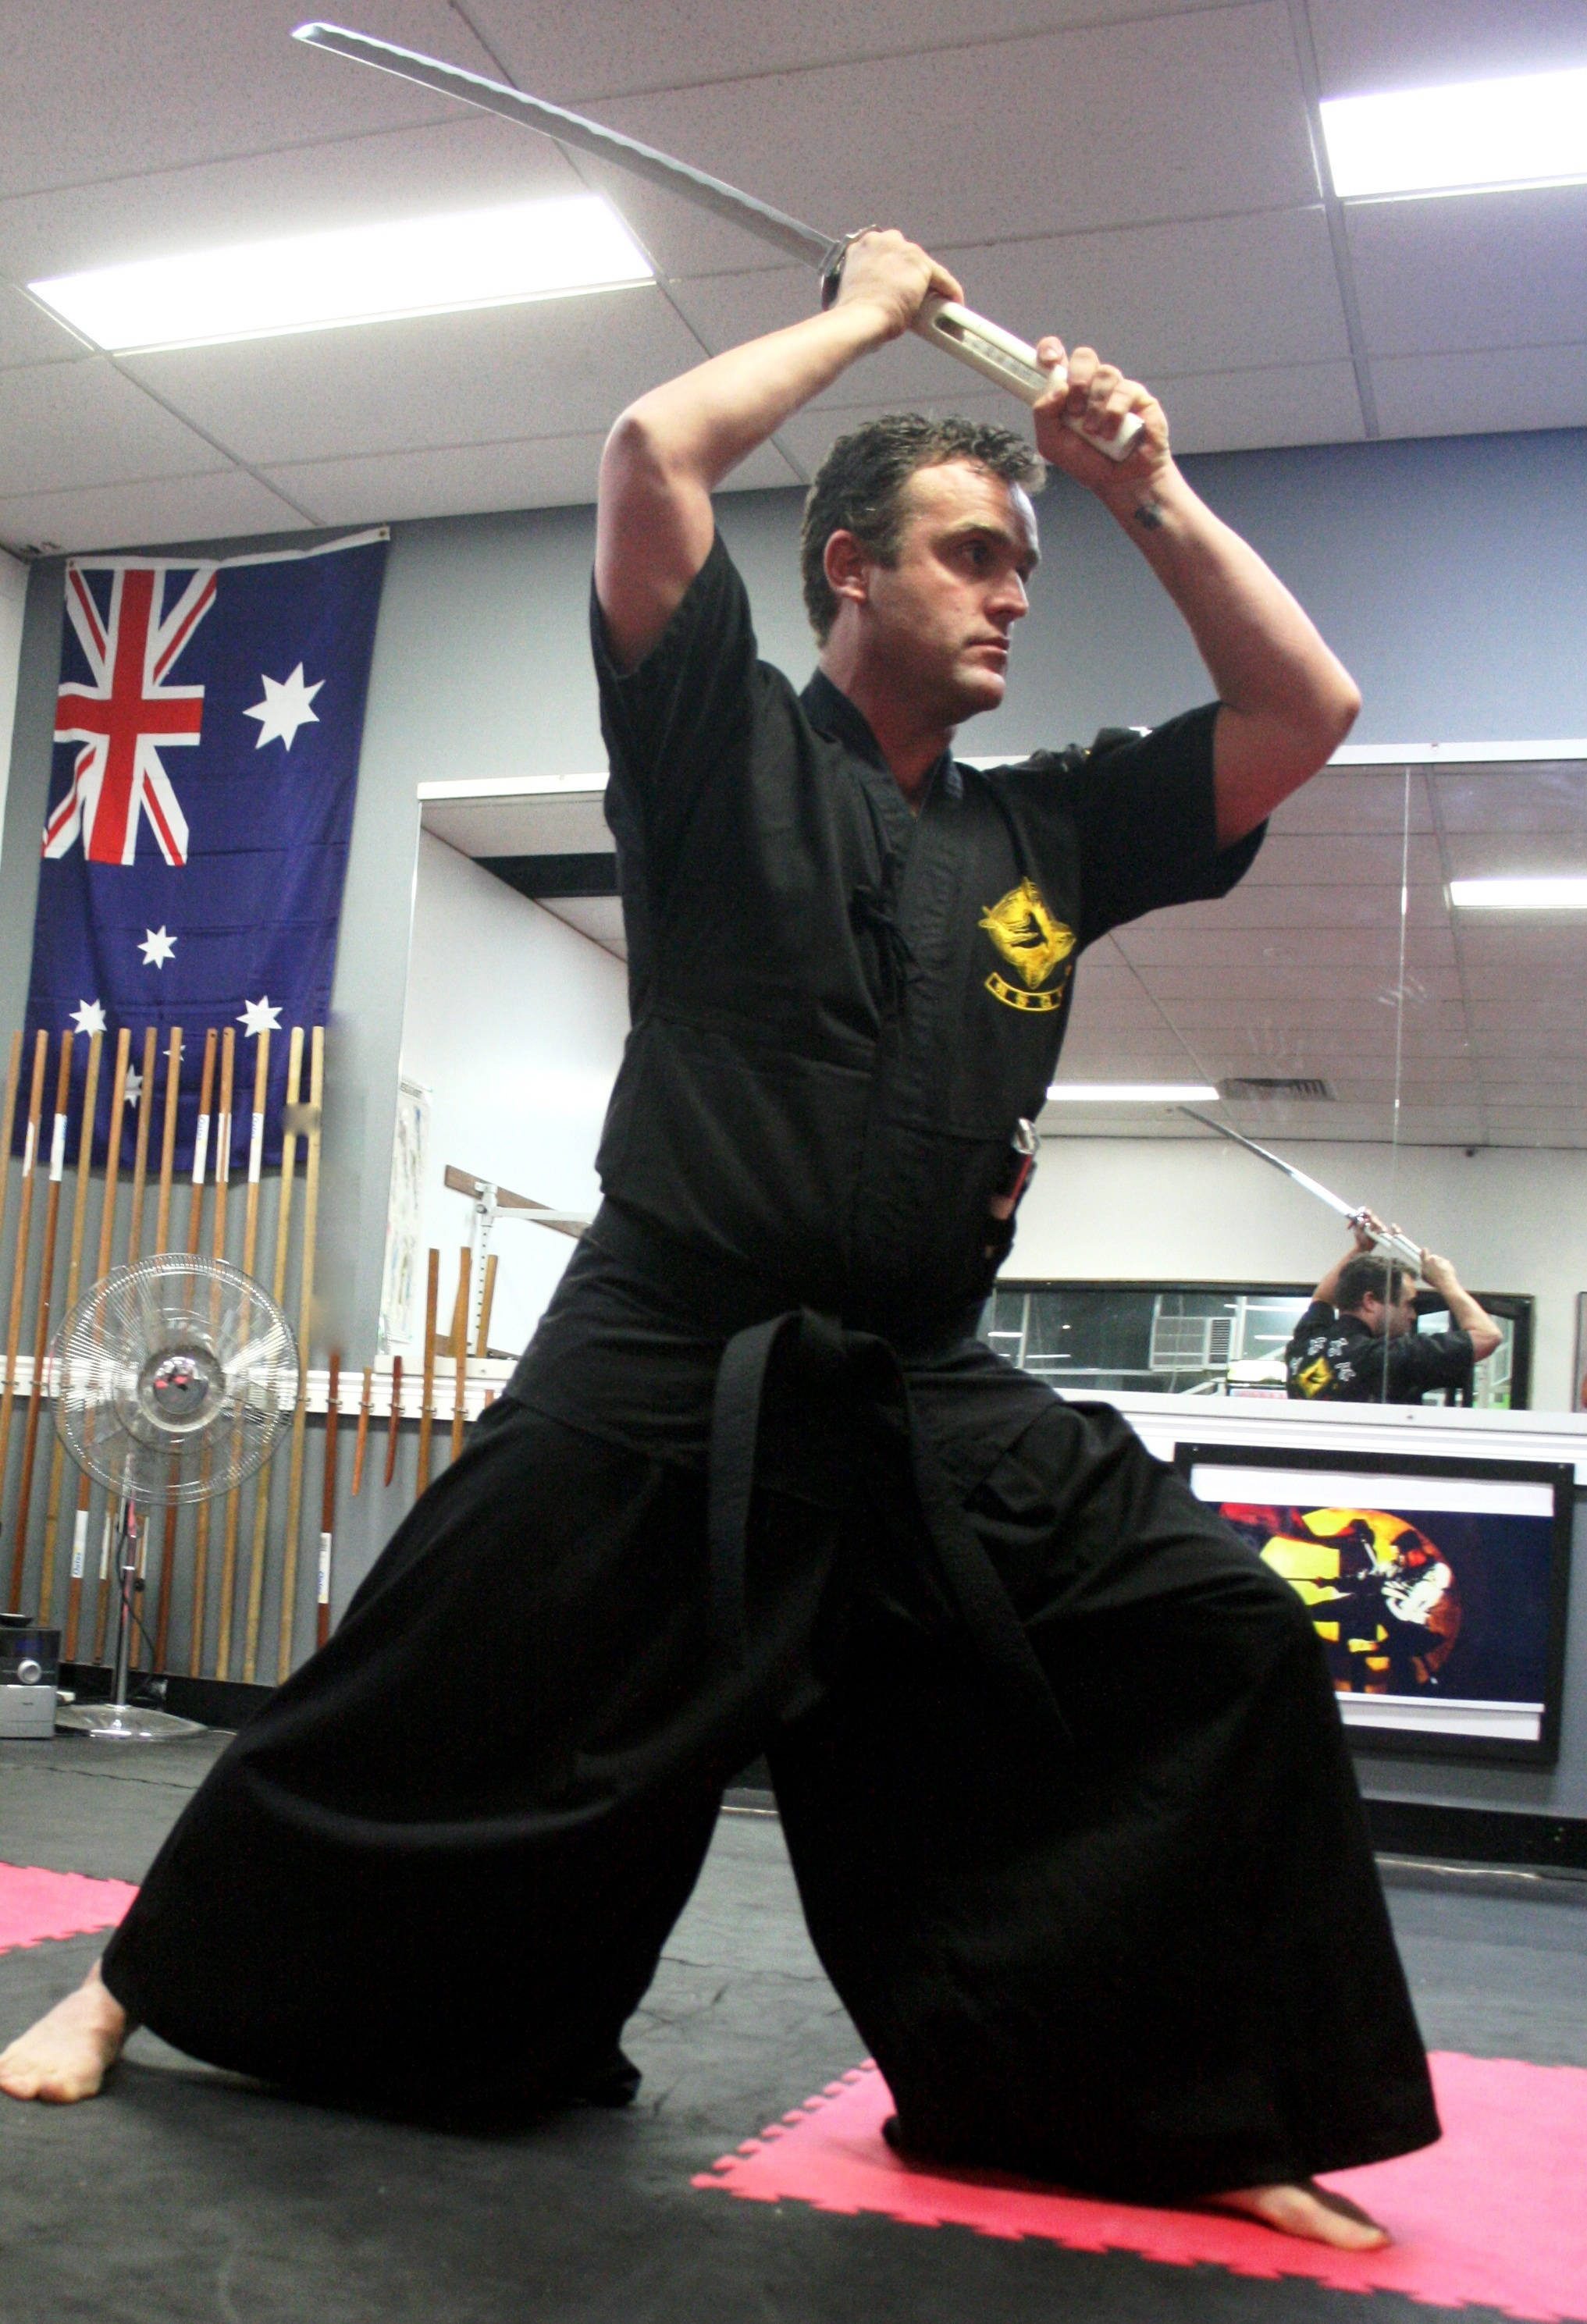 Korean Sword Classes - Results Personal Training Studio Weston Creek